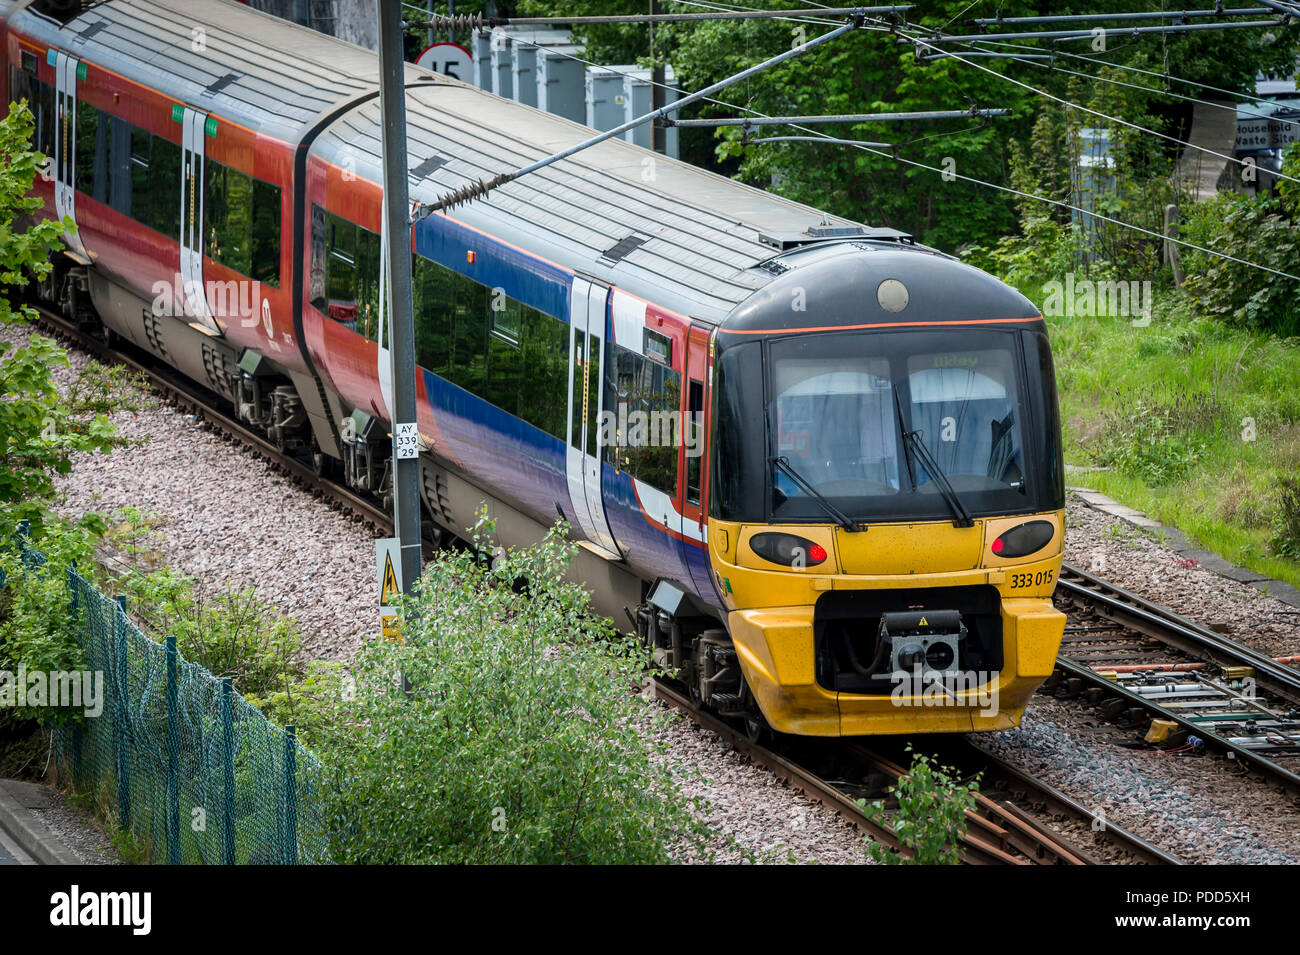 Class 333 passenger train in Northern livery travelling towards Ilkley in West Yorkshire. - Stock Image